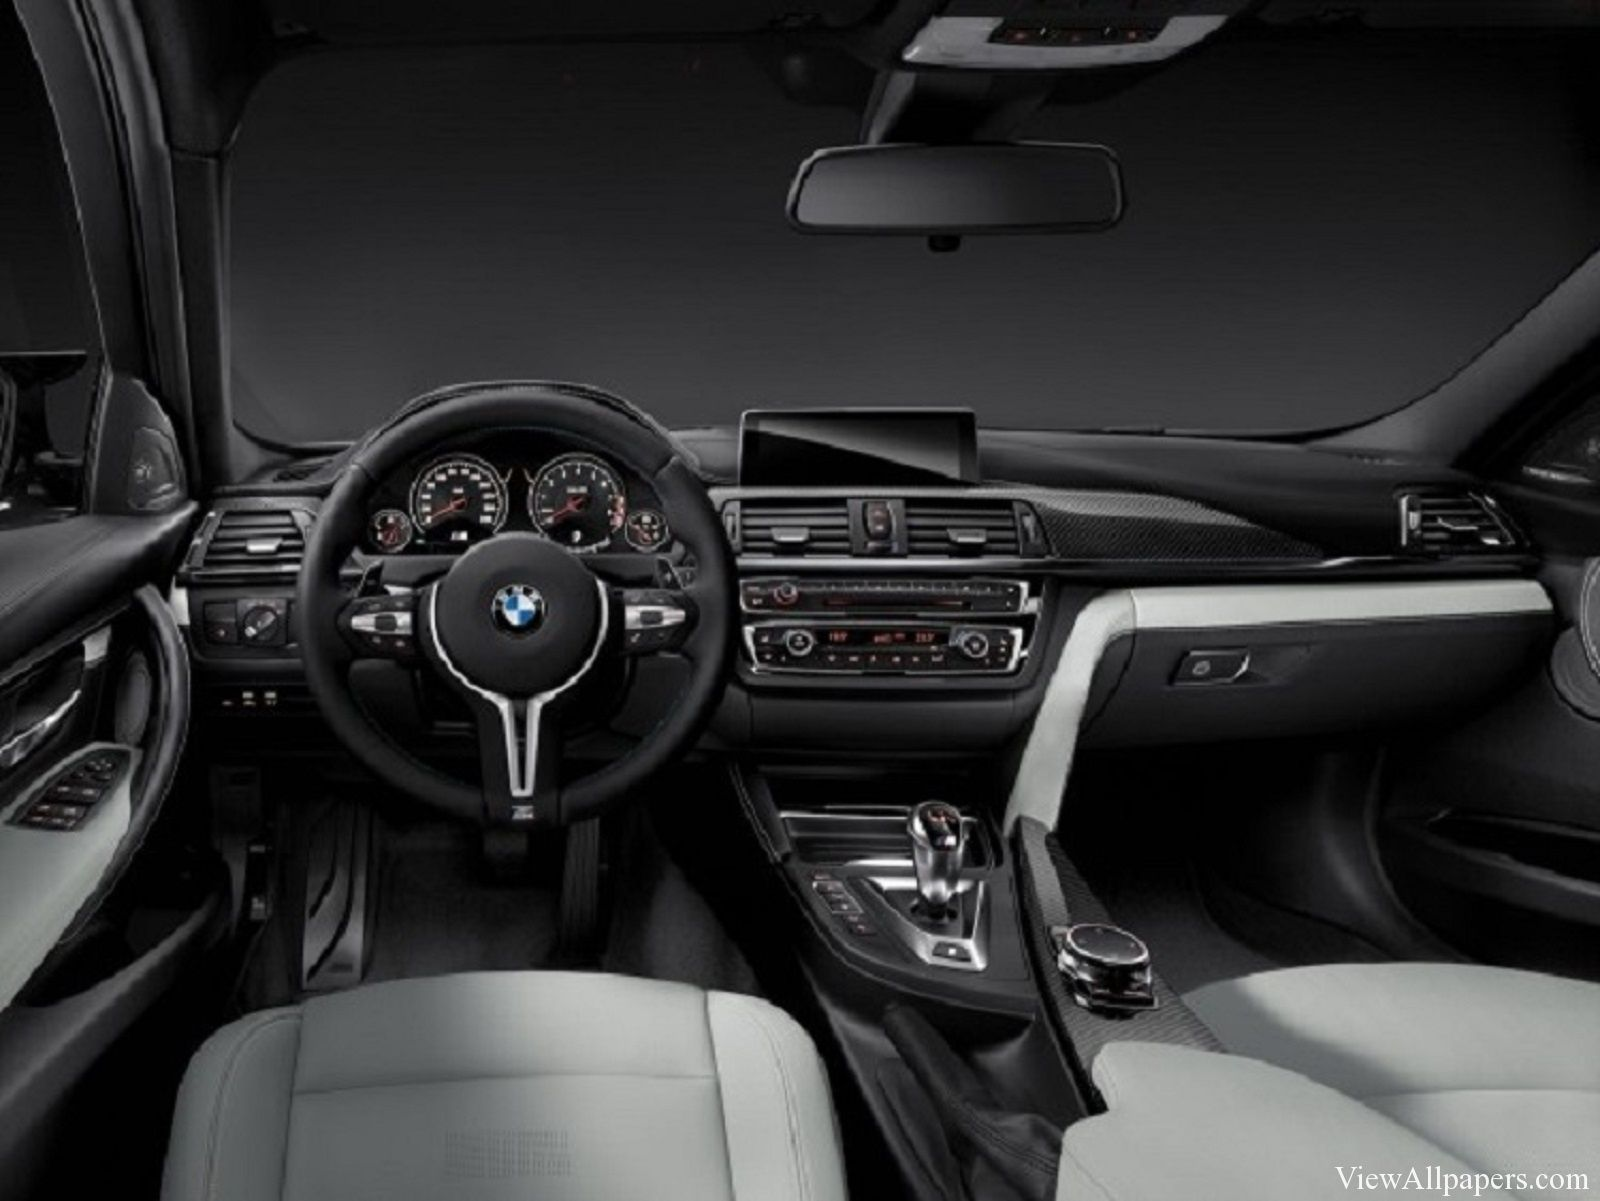 2013 bmw 320i interior male models picture - 2017 Bmw M5 Interior